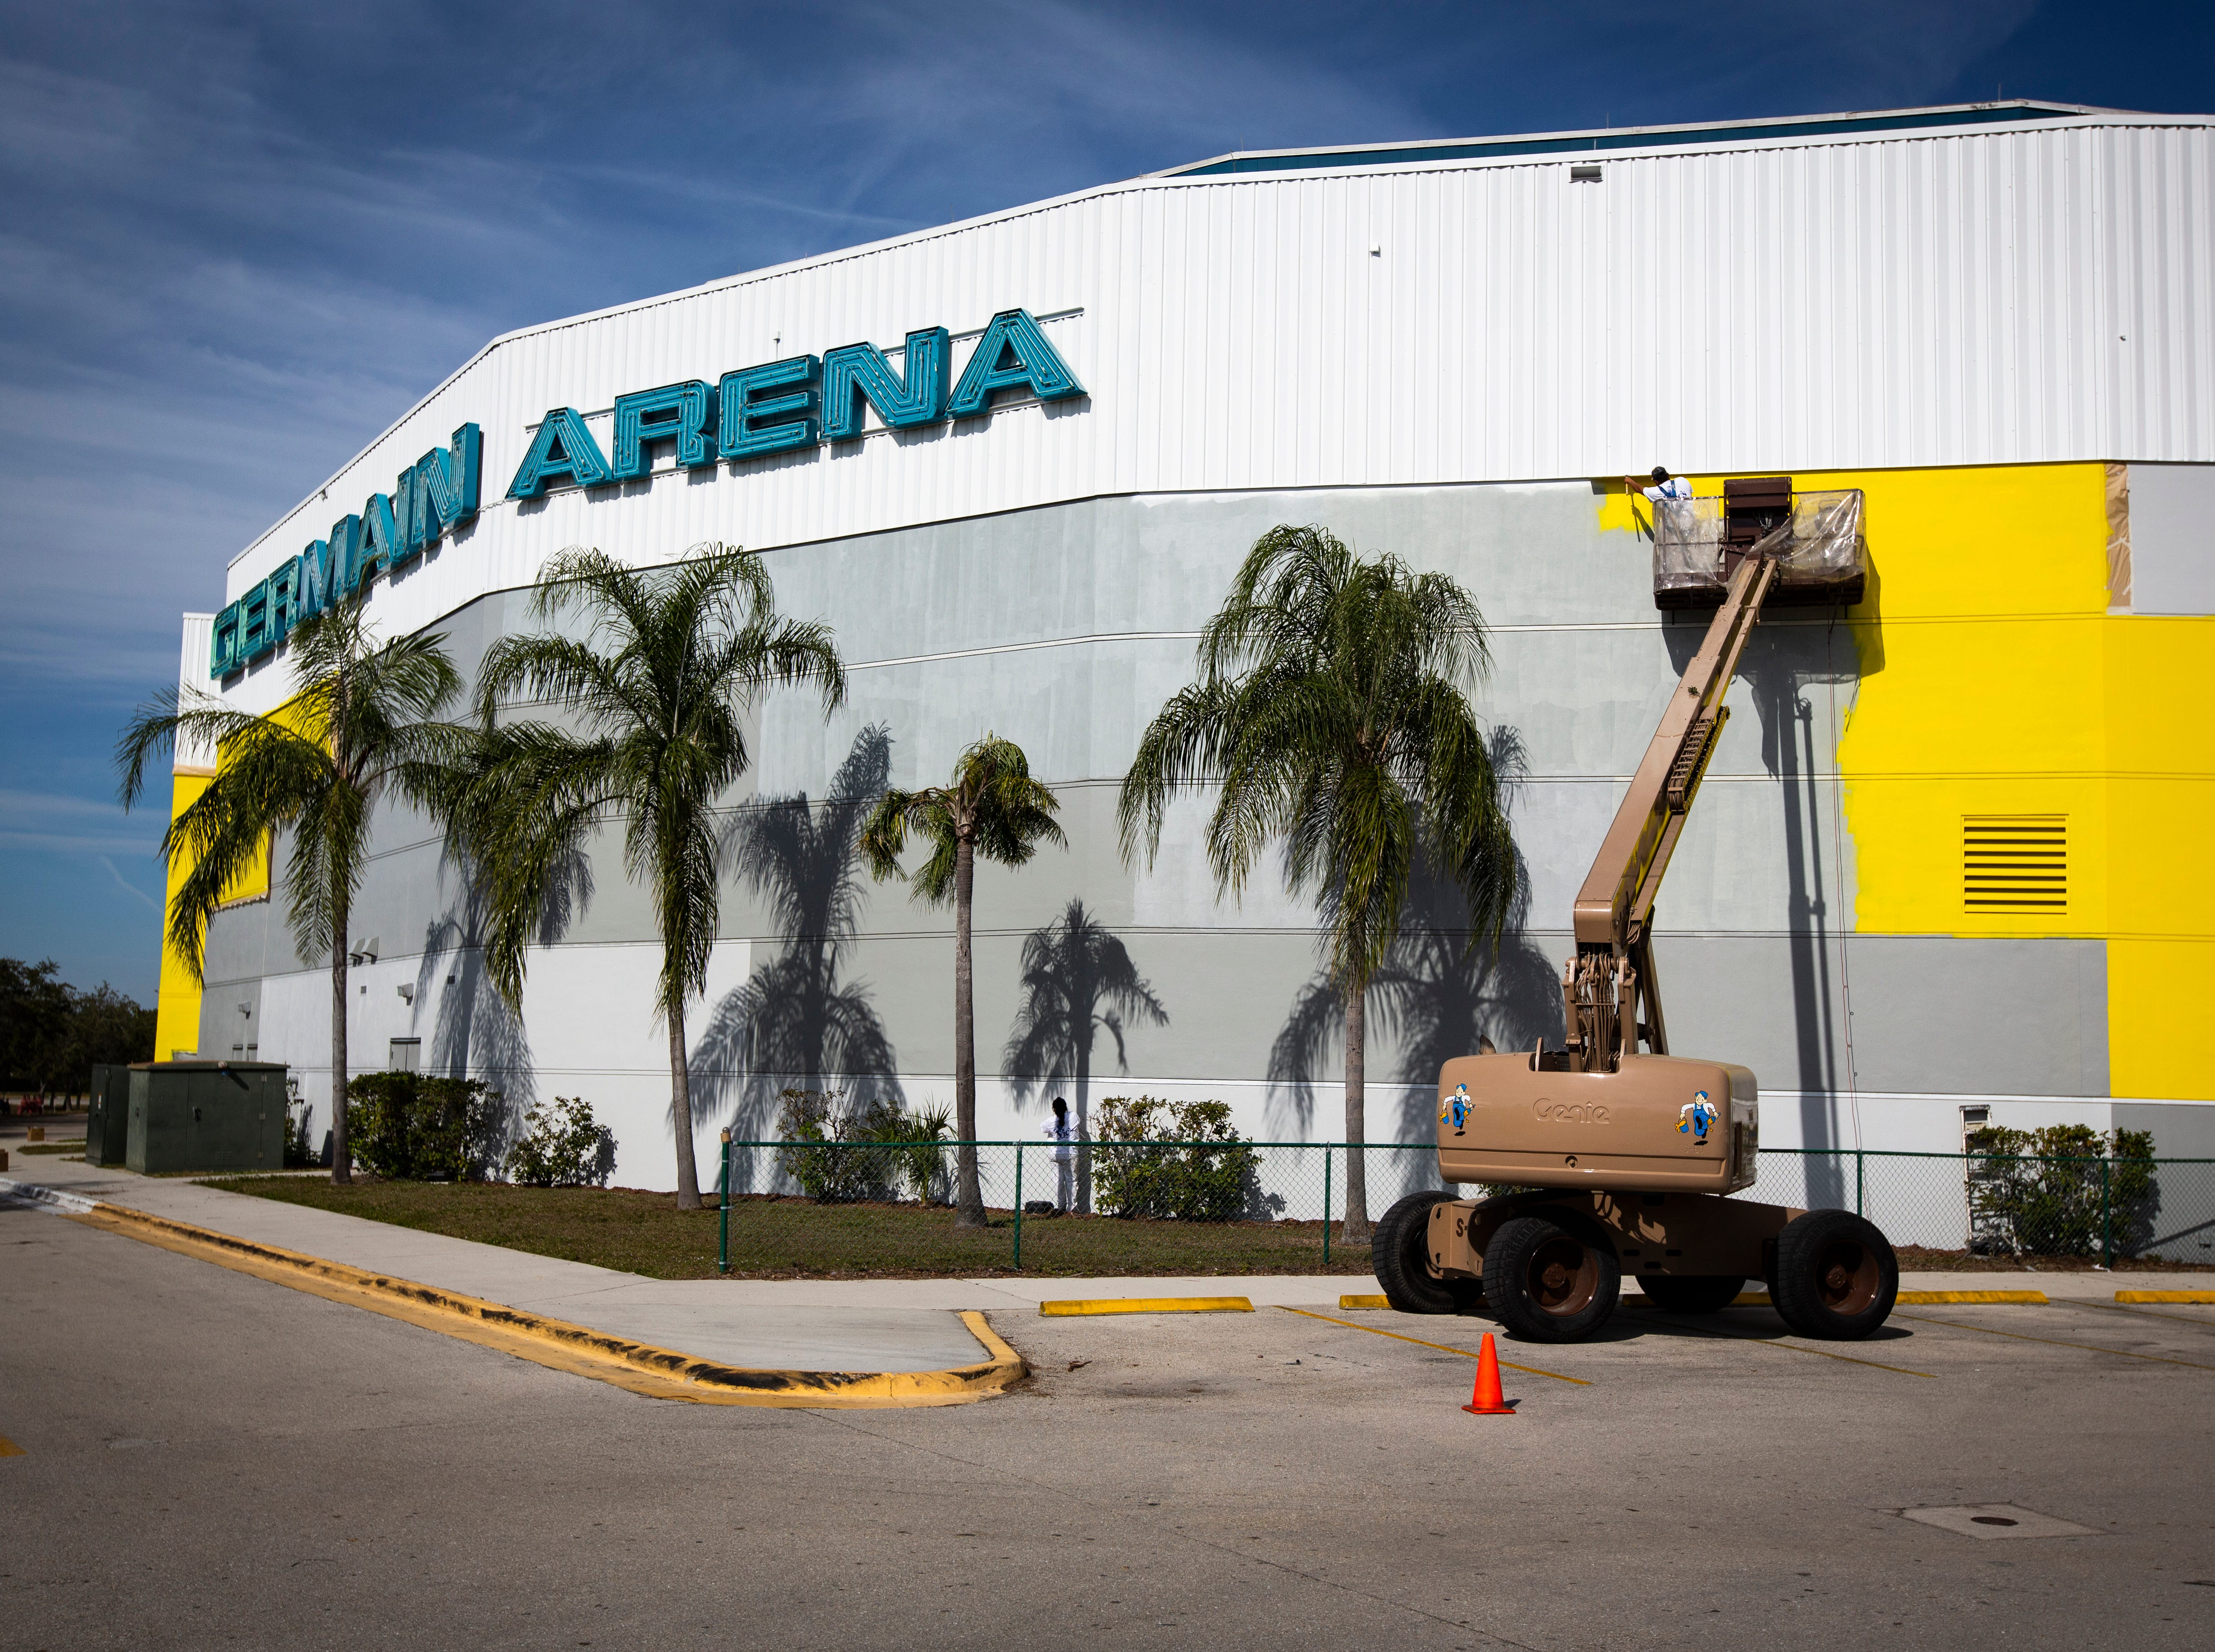 Workers from Vic's Painting & Reconstruction of Fort Myers have been working for three weeks on painting the Hertz Arena yellow and continued on Jan. 8, 2019. The Estero-based rental car giant took over the naming rights of the Germain Arena last year.